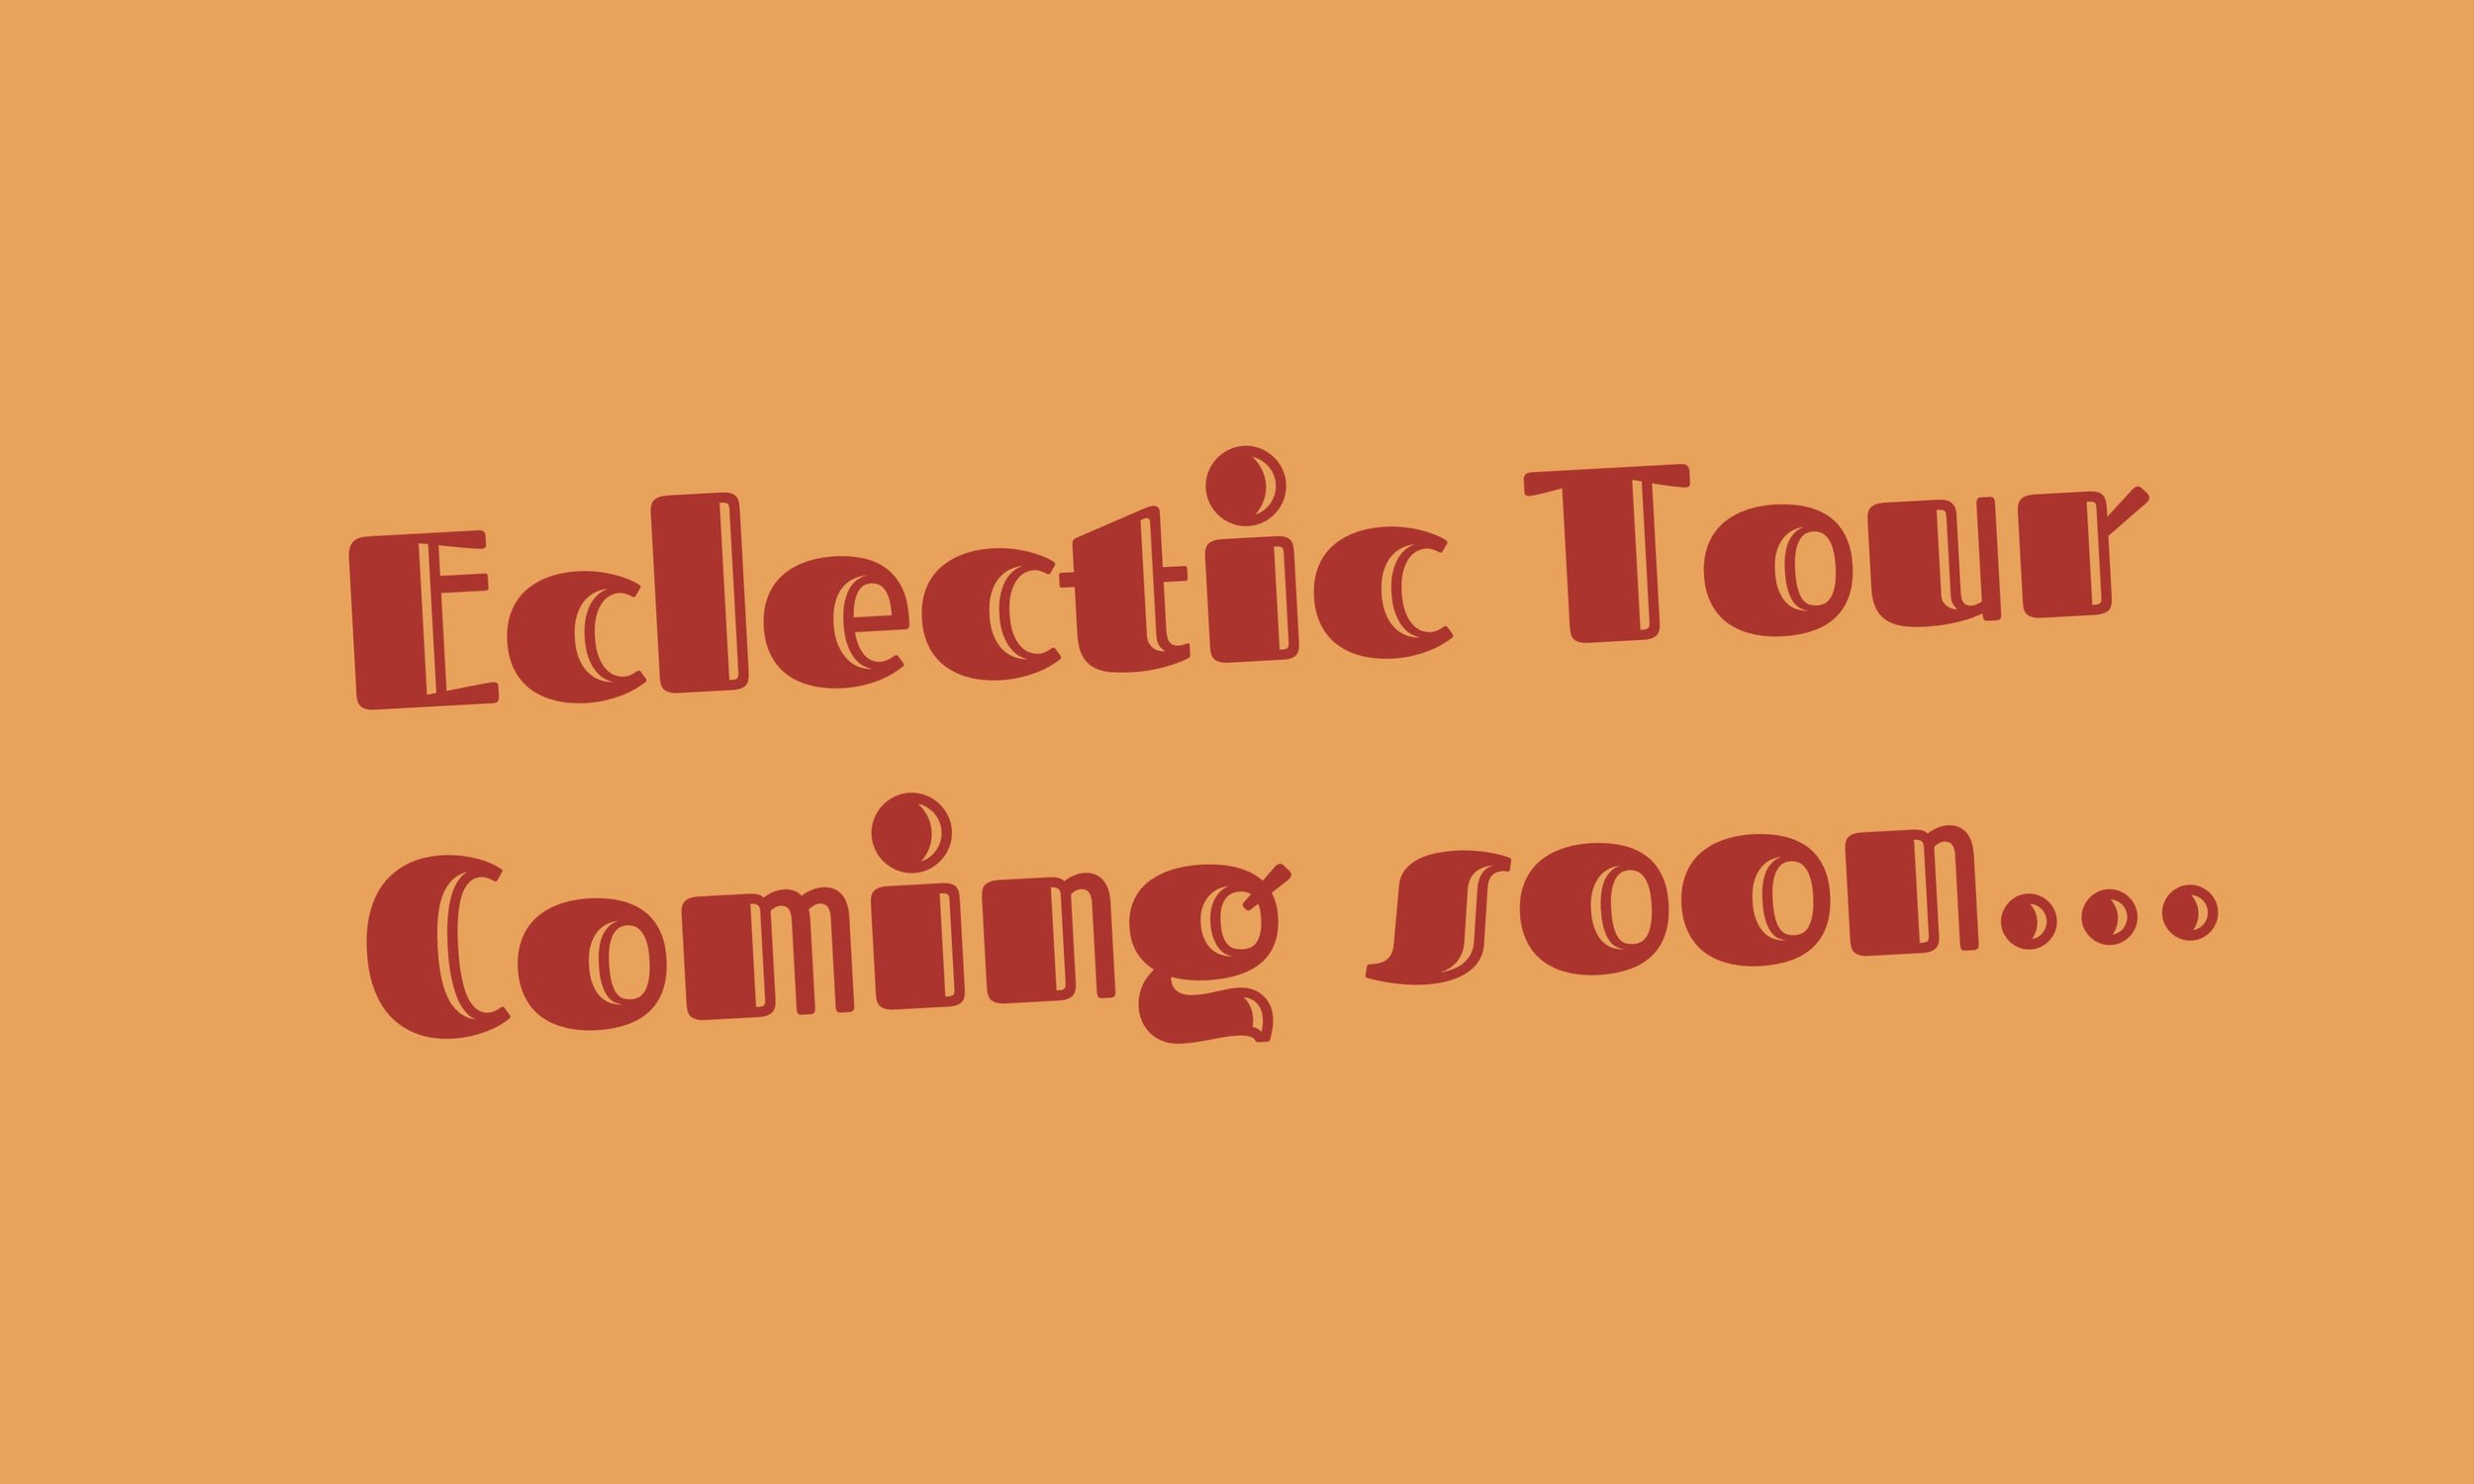 Eclectic Tour coming soon.jpeg